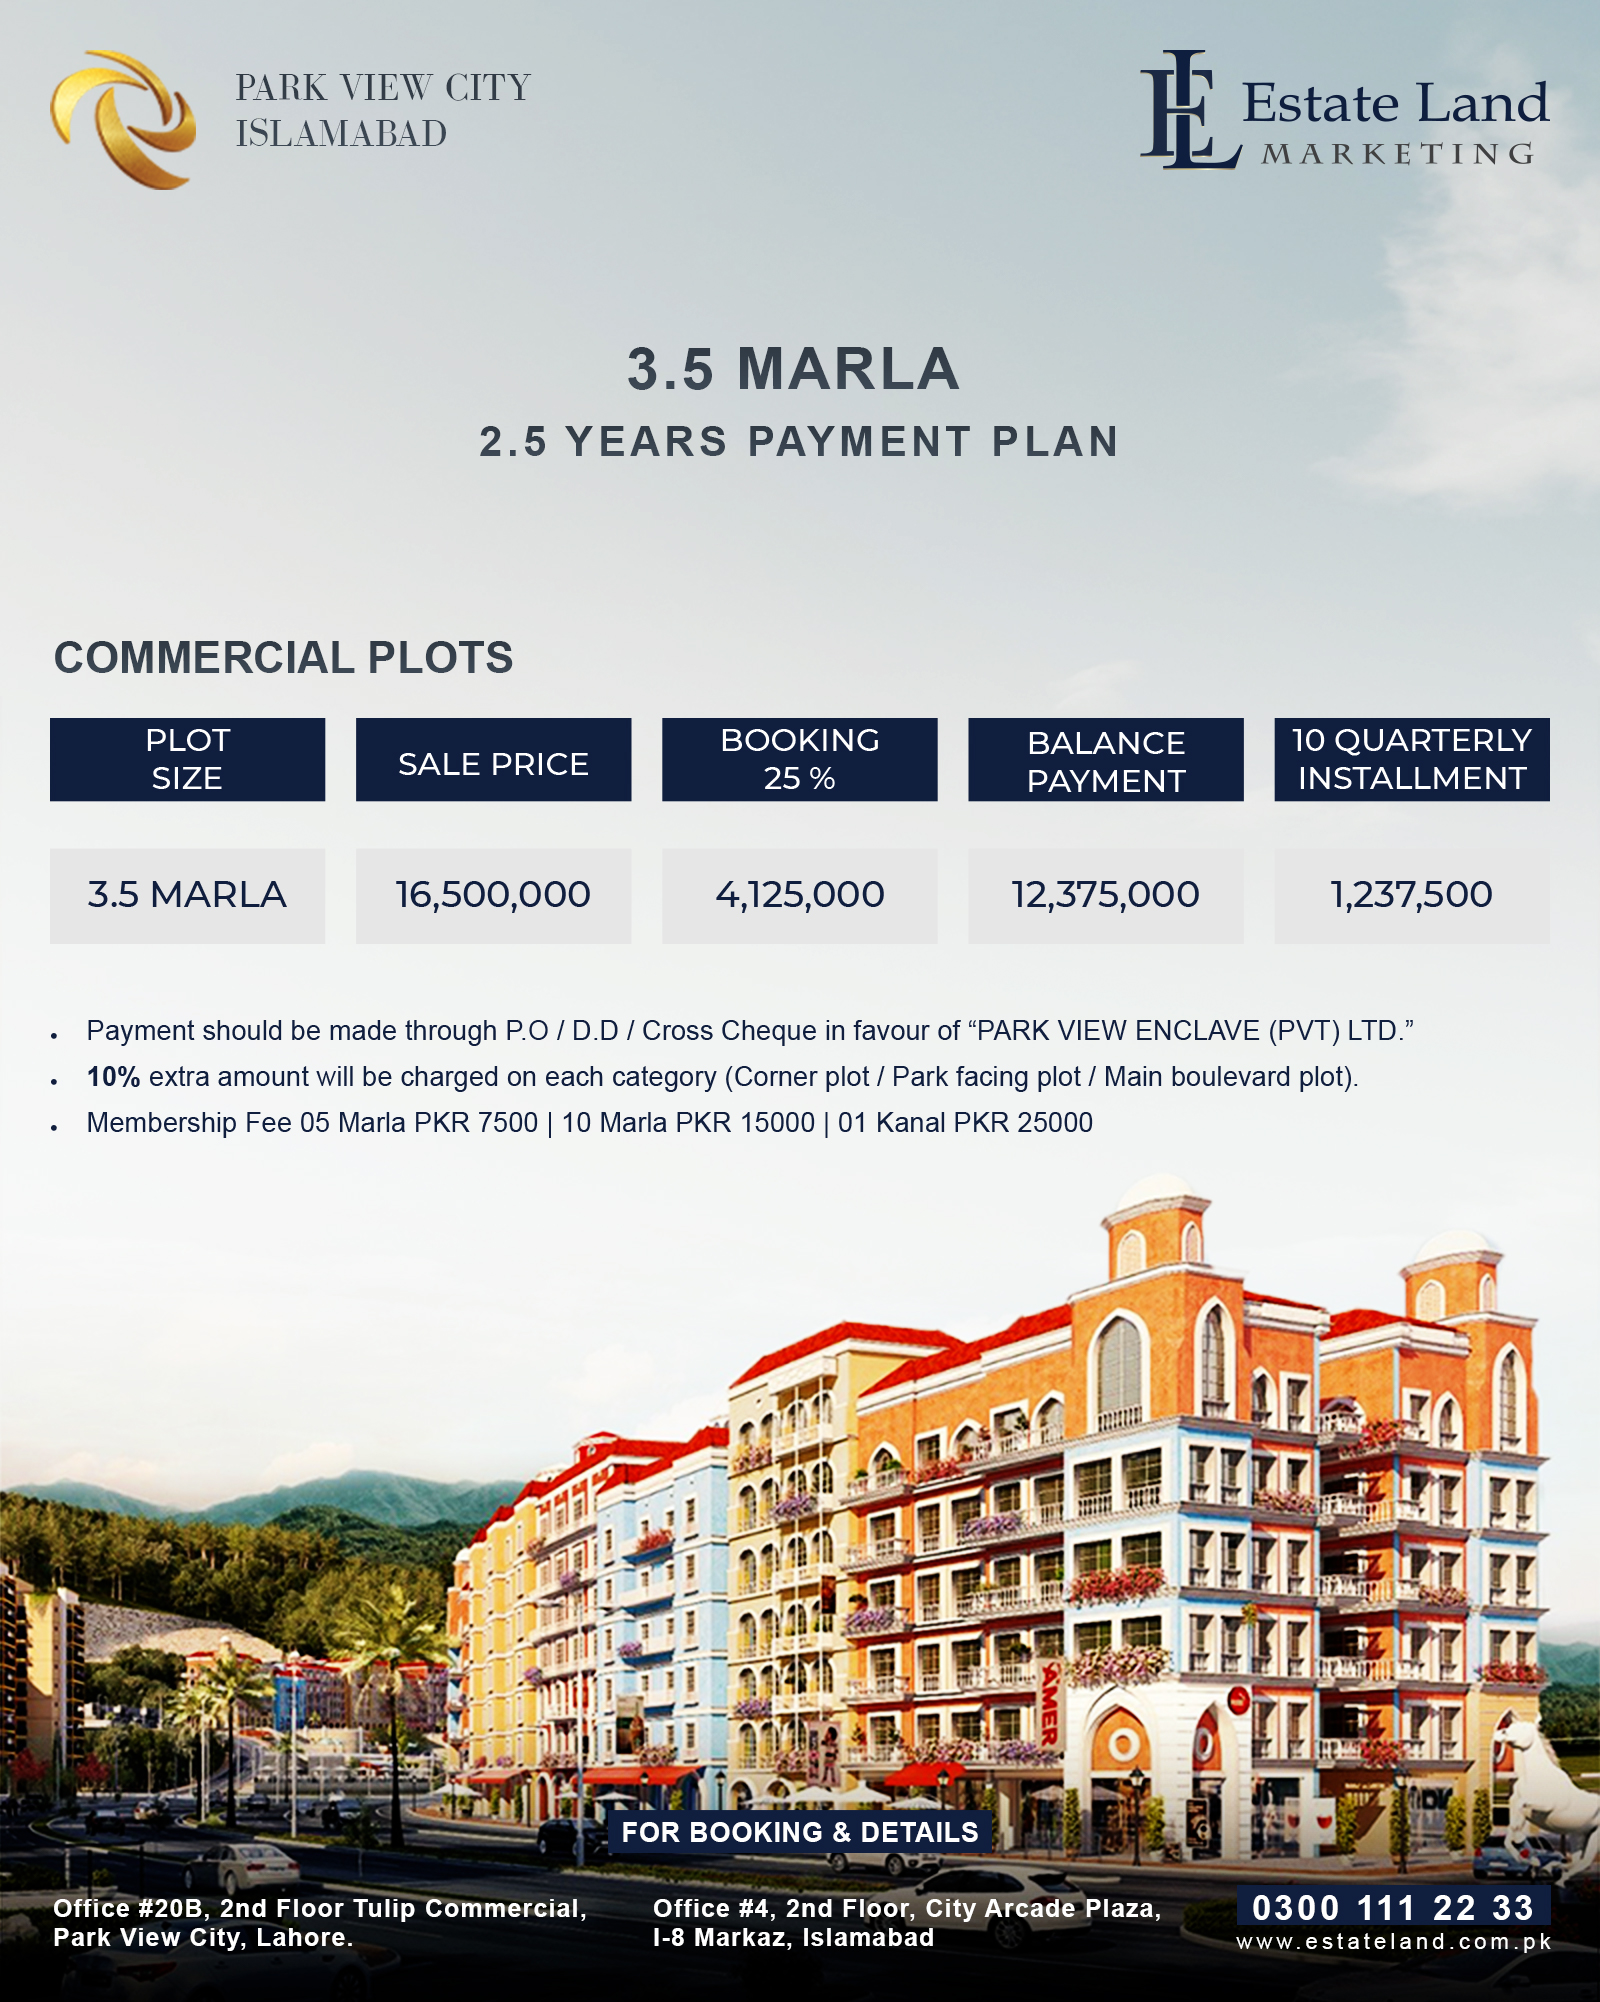 park view city Islamabad 3.5 marla payment plan